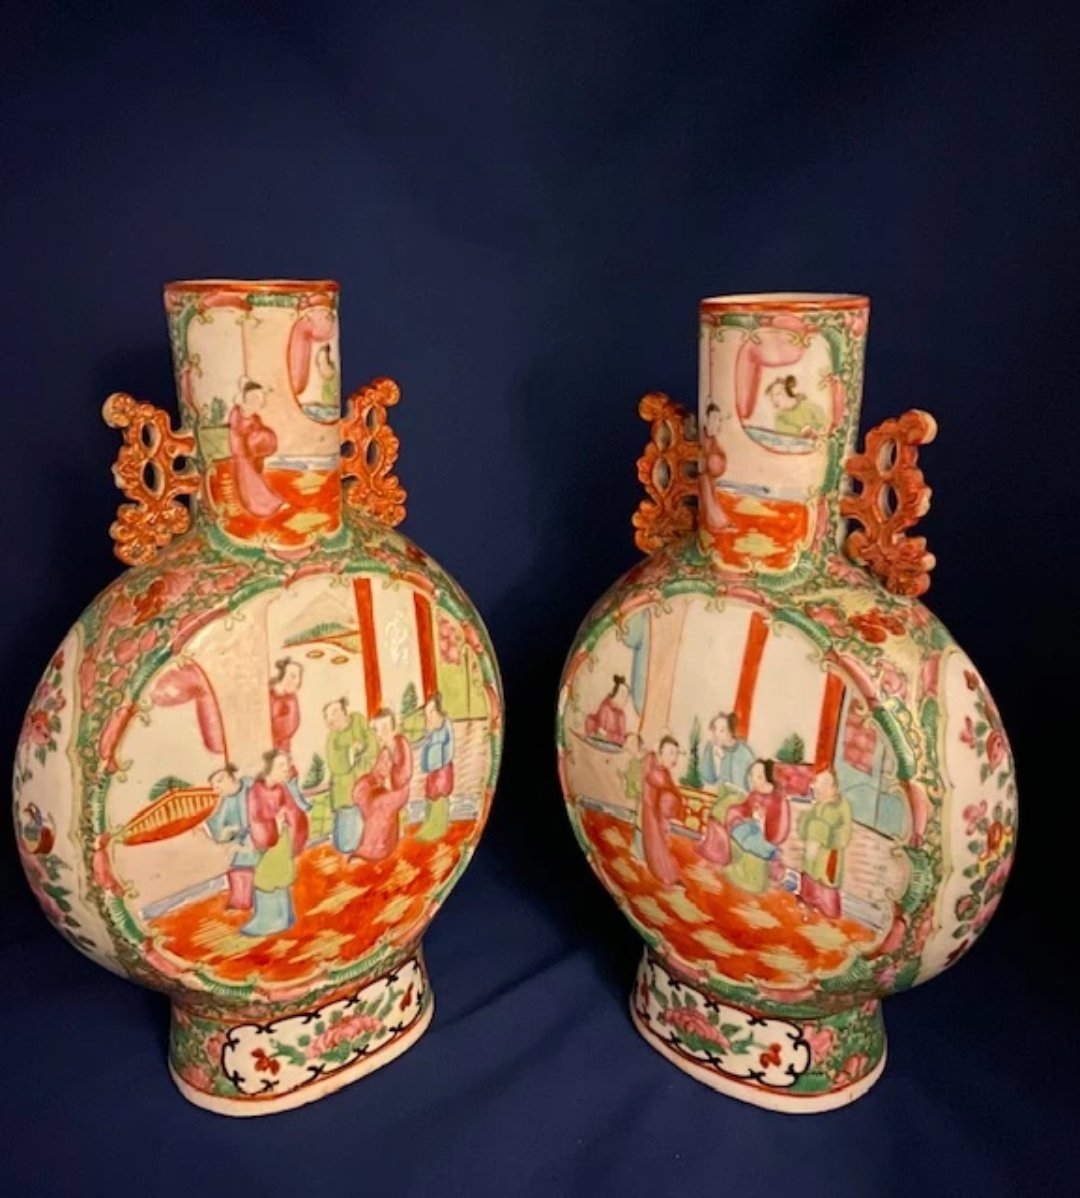 Pair of 19th Century Rose Medallion Porcelain Vases